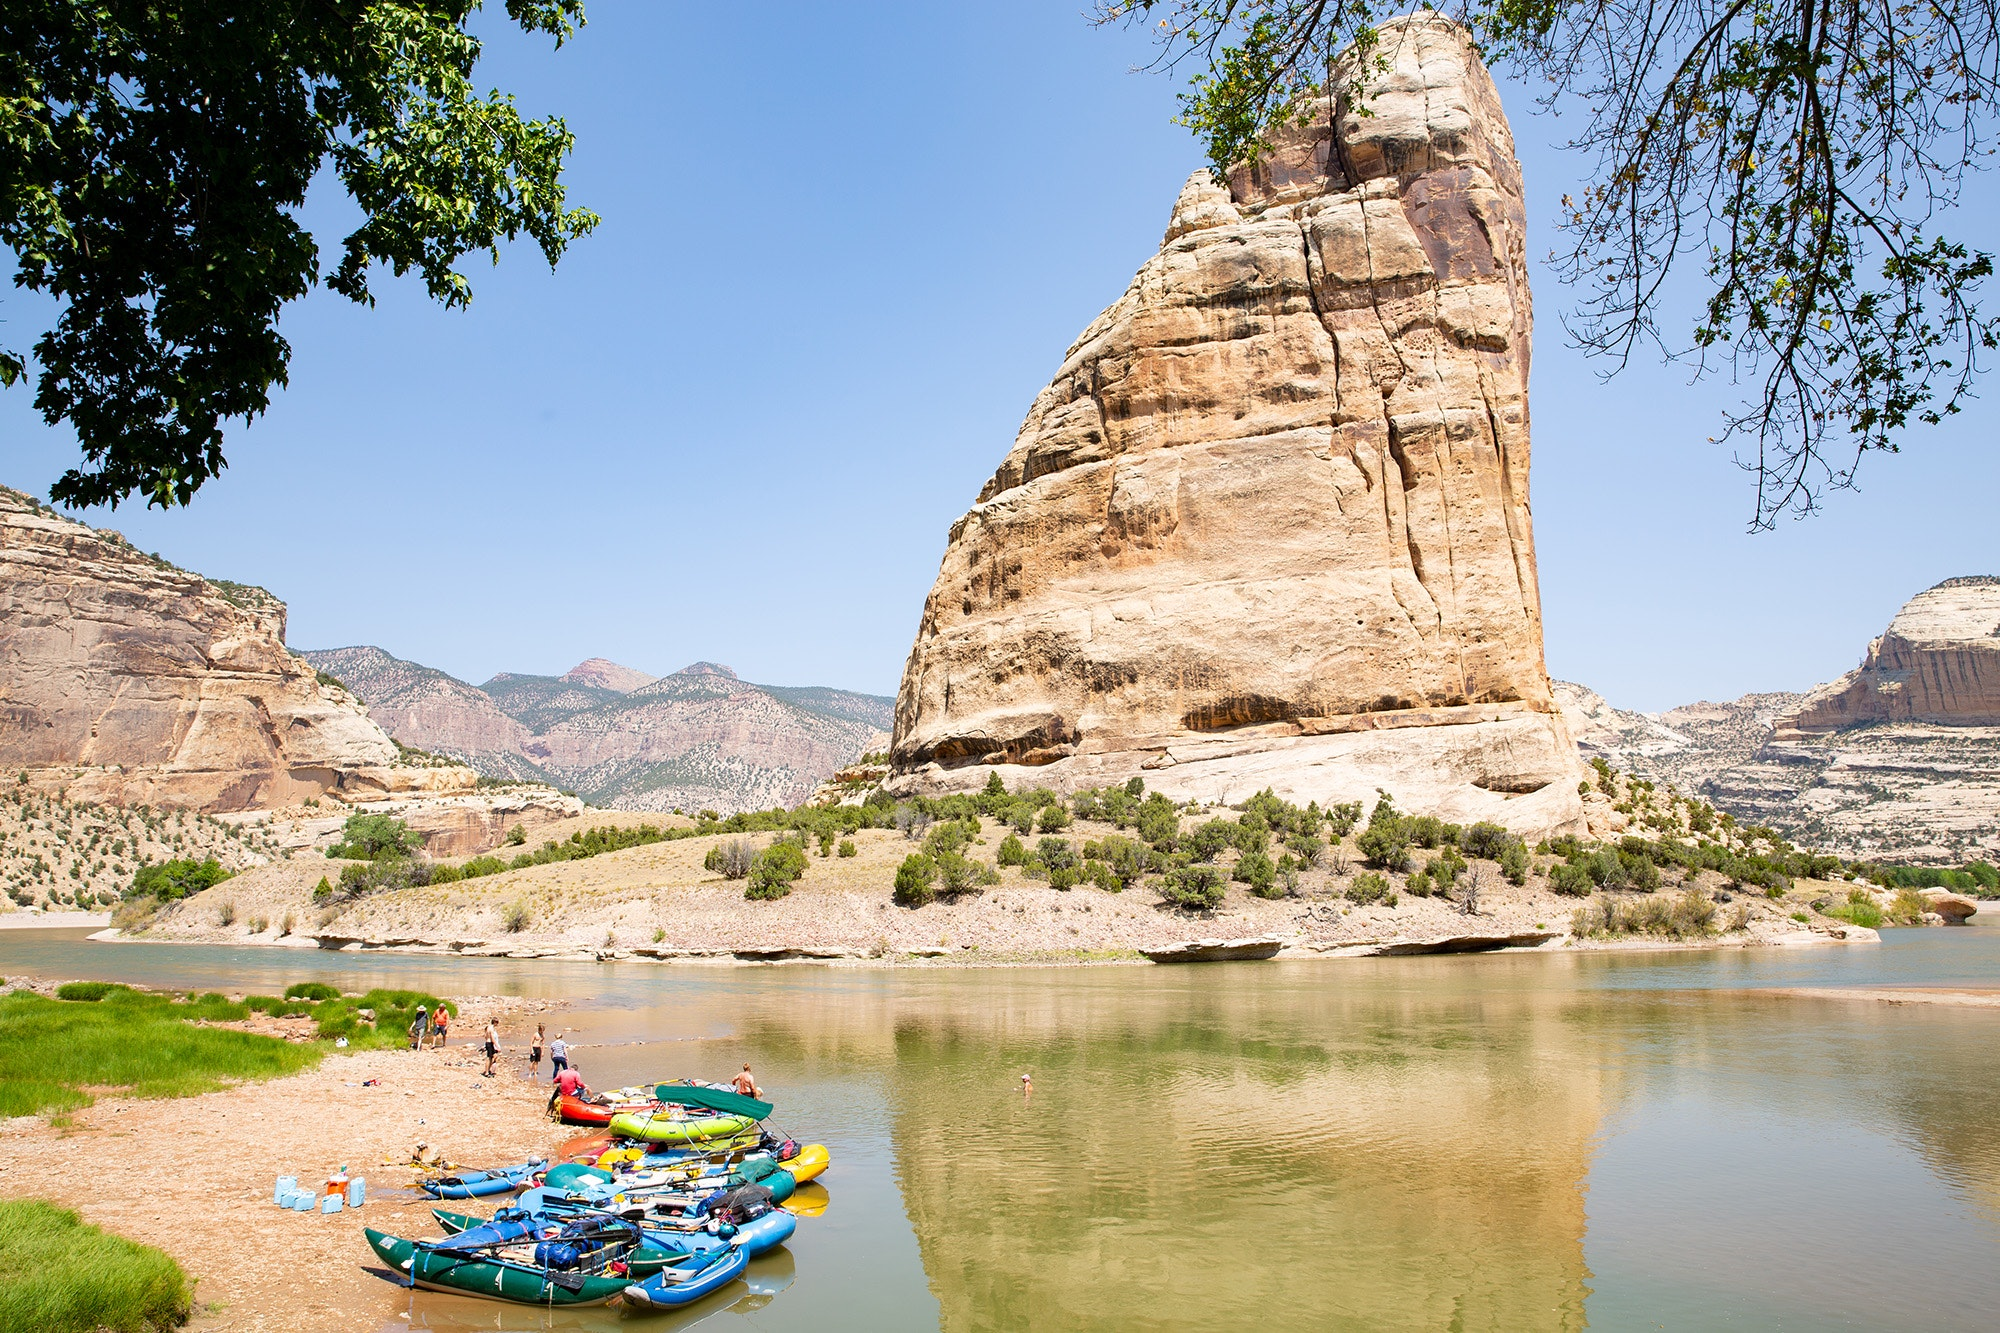 So much more than dinosaur bones, Dinosaur National Monument is a great place to swim and kayak.